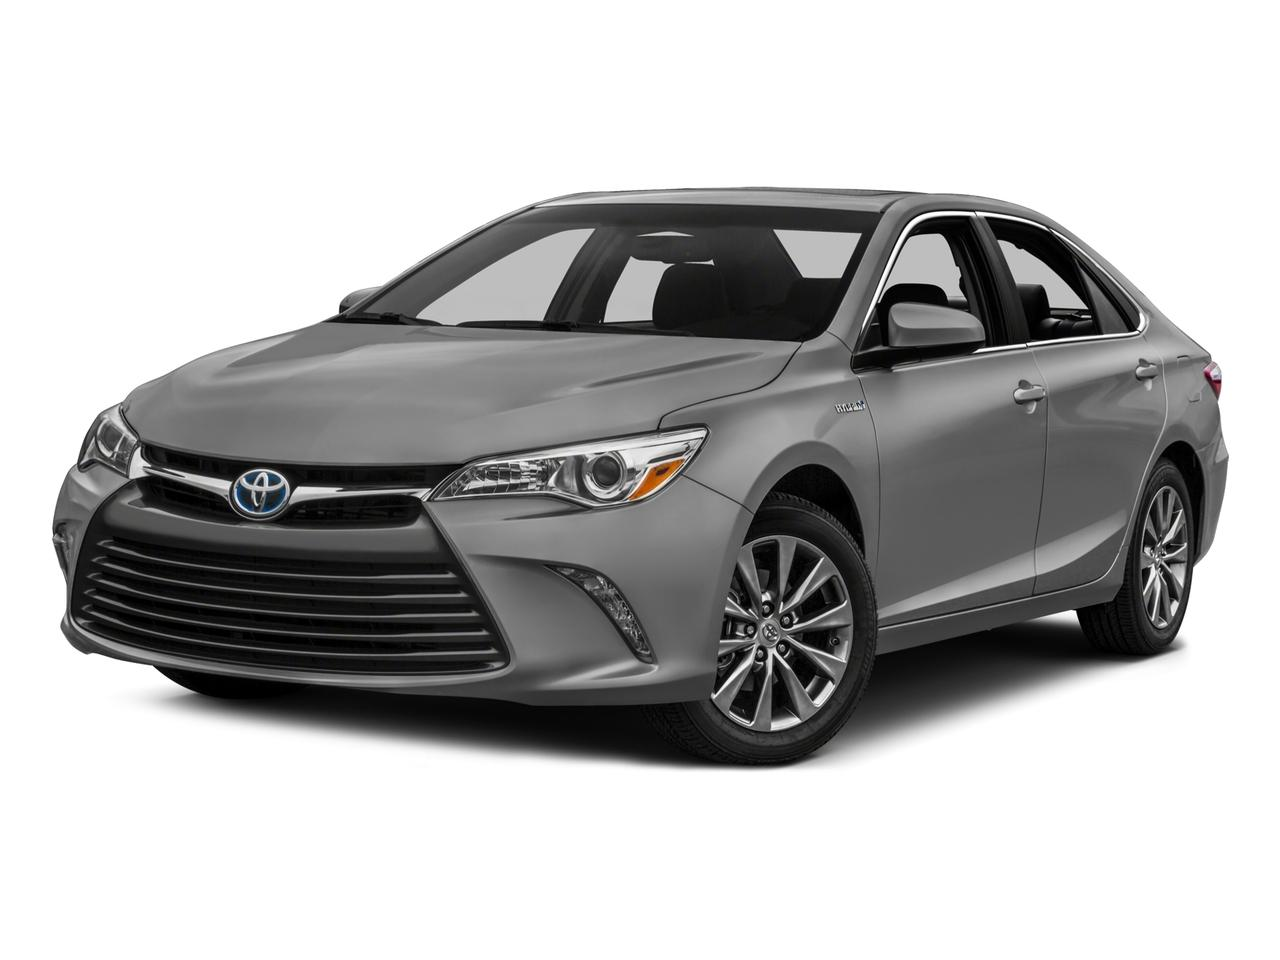 2017 Toyota Camry Vehicle Photo in San Antonio, TX 78230